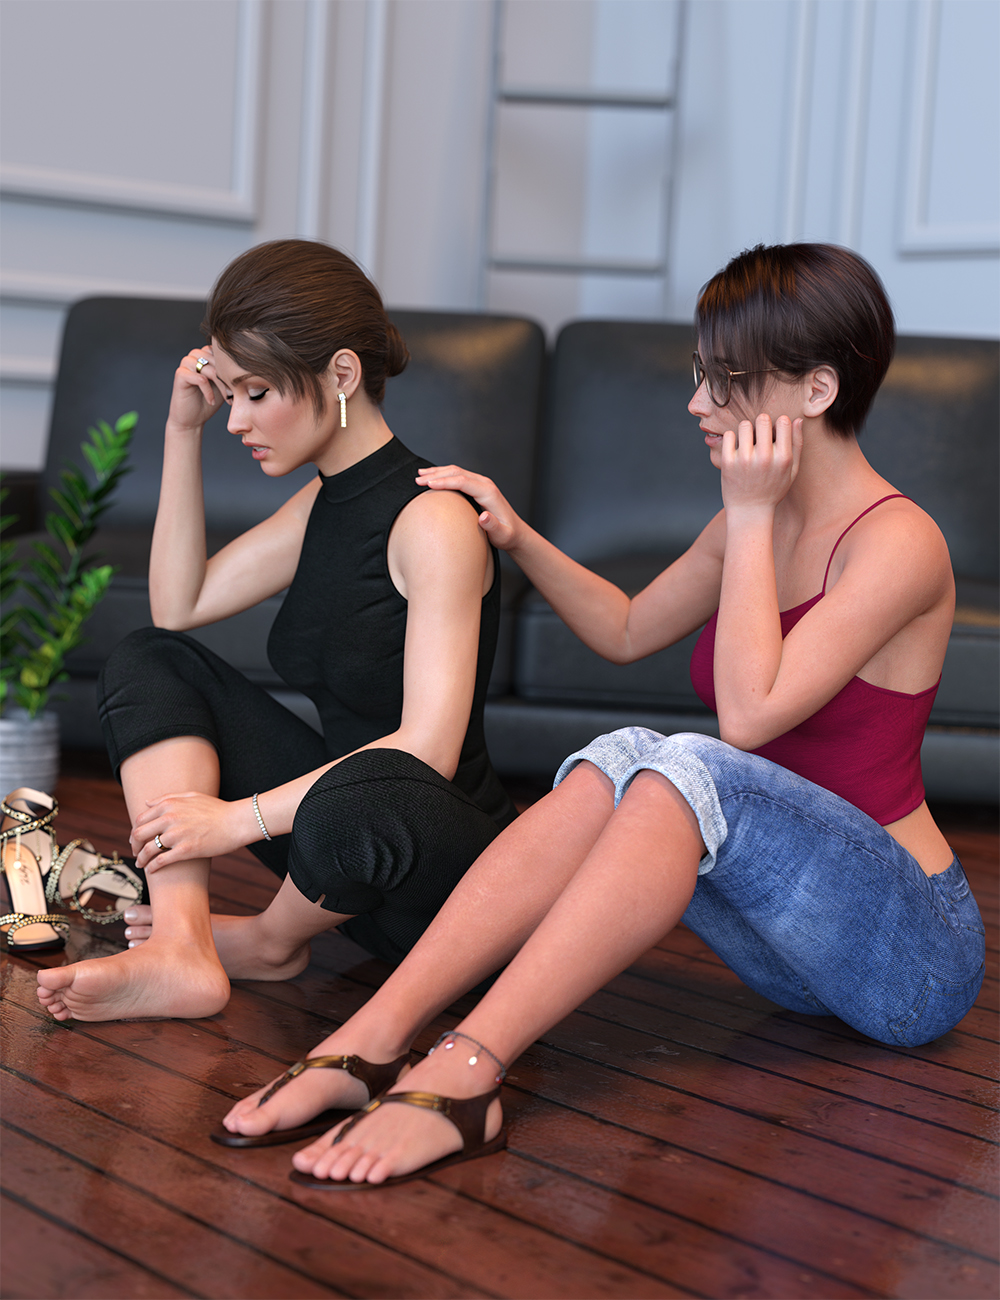 IM Comforting Pose Collection by: Paper TigerIronman, 3D Models by Daz 3D